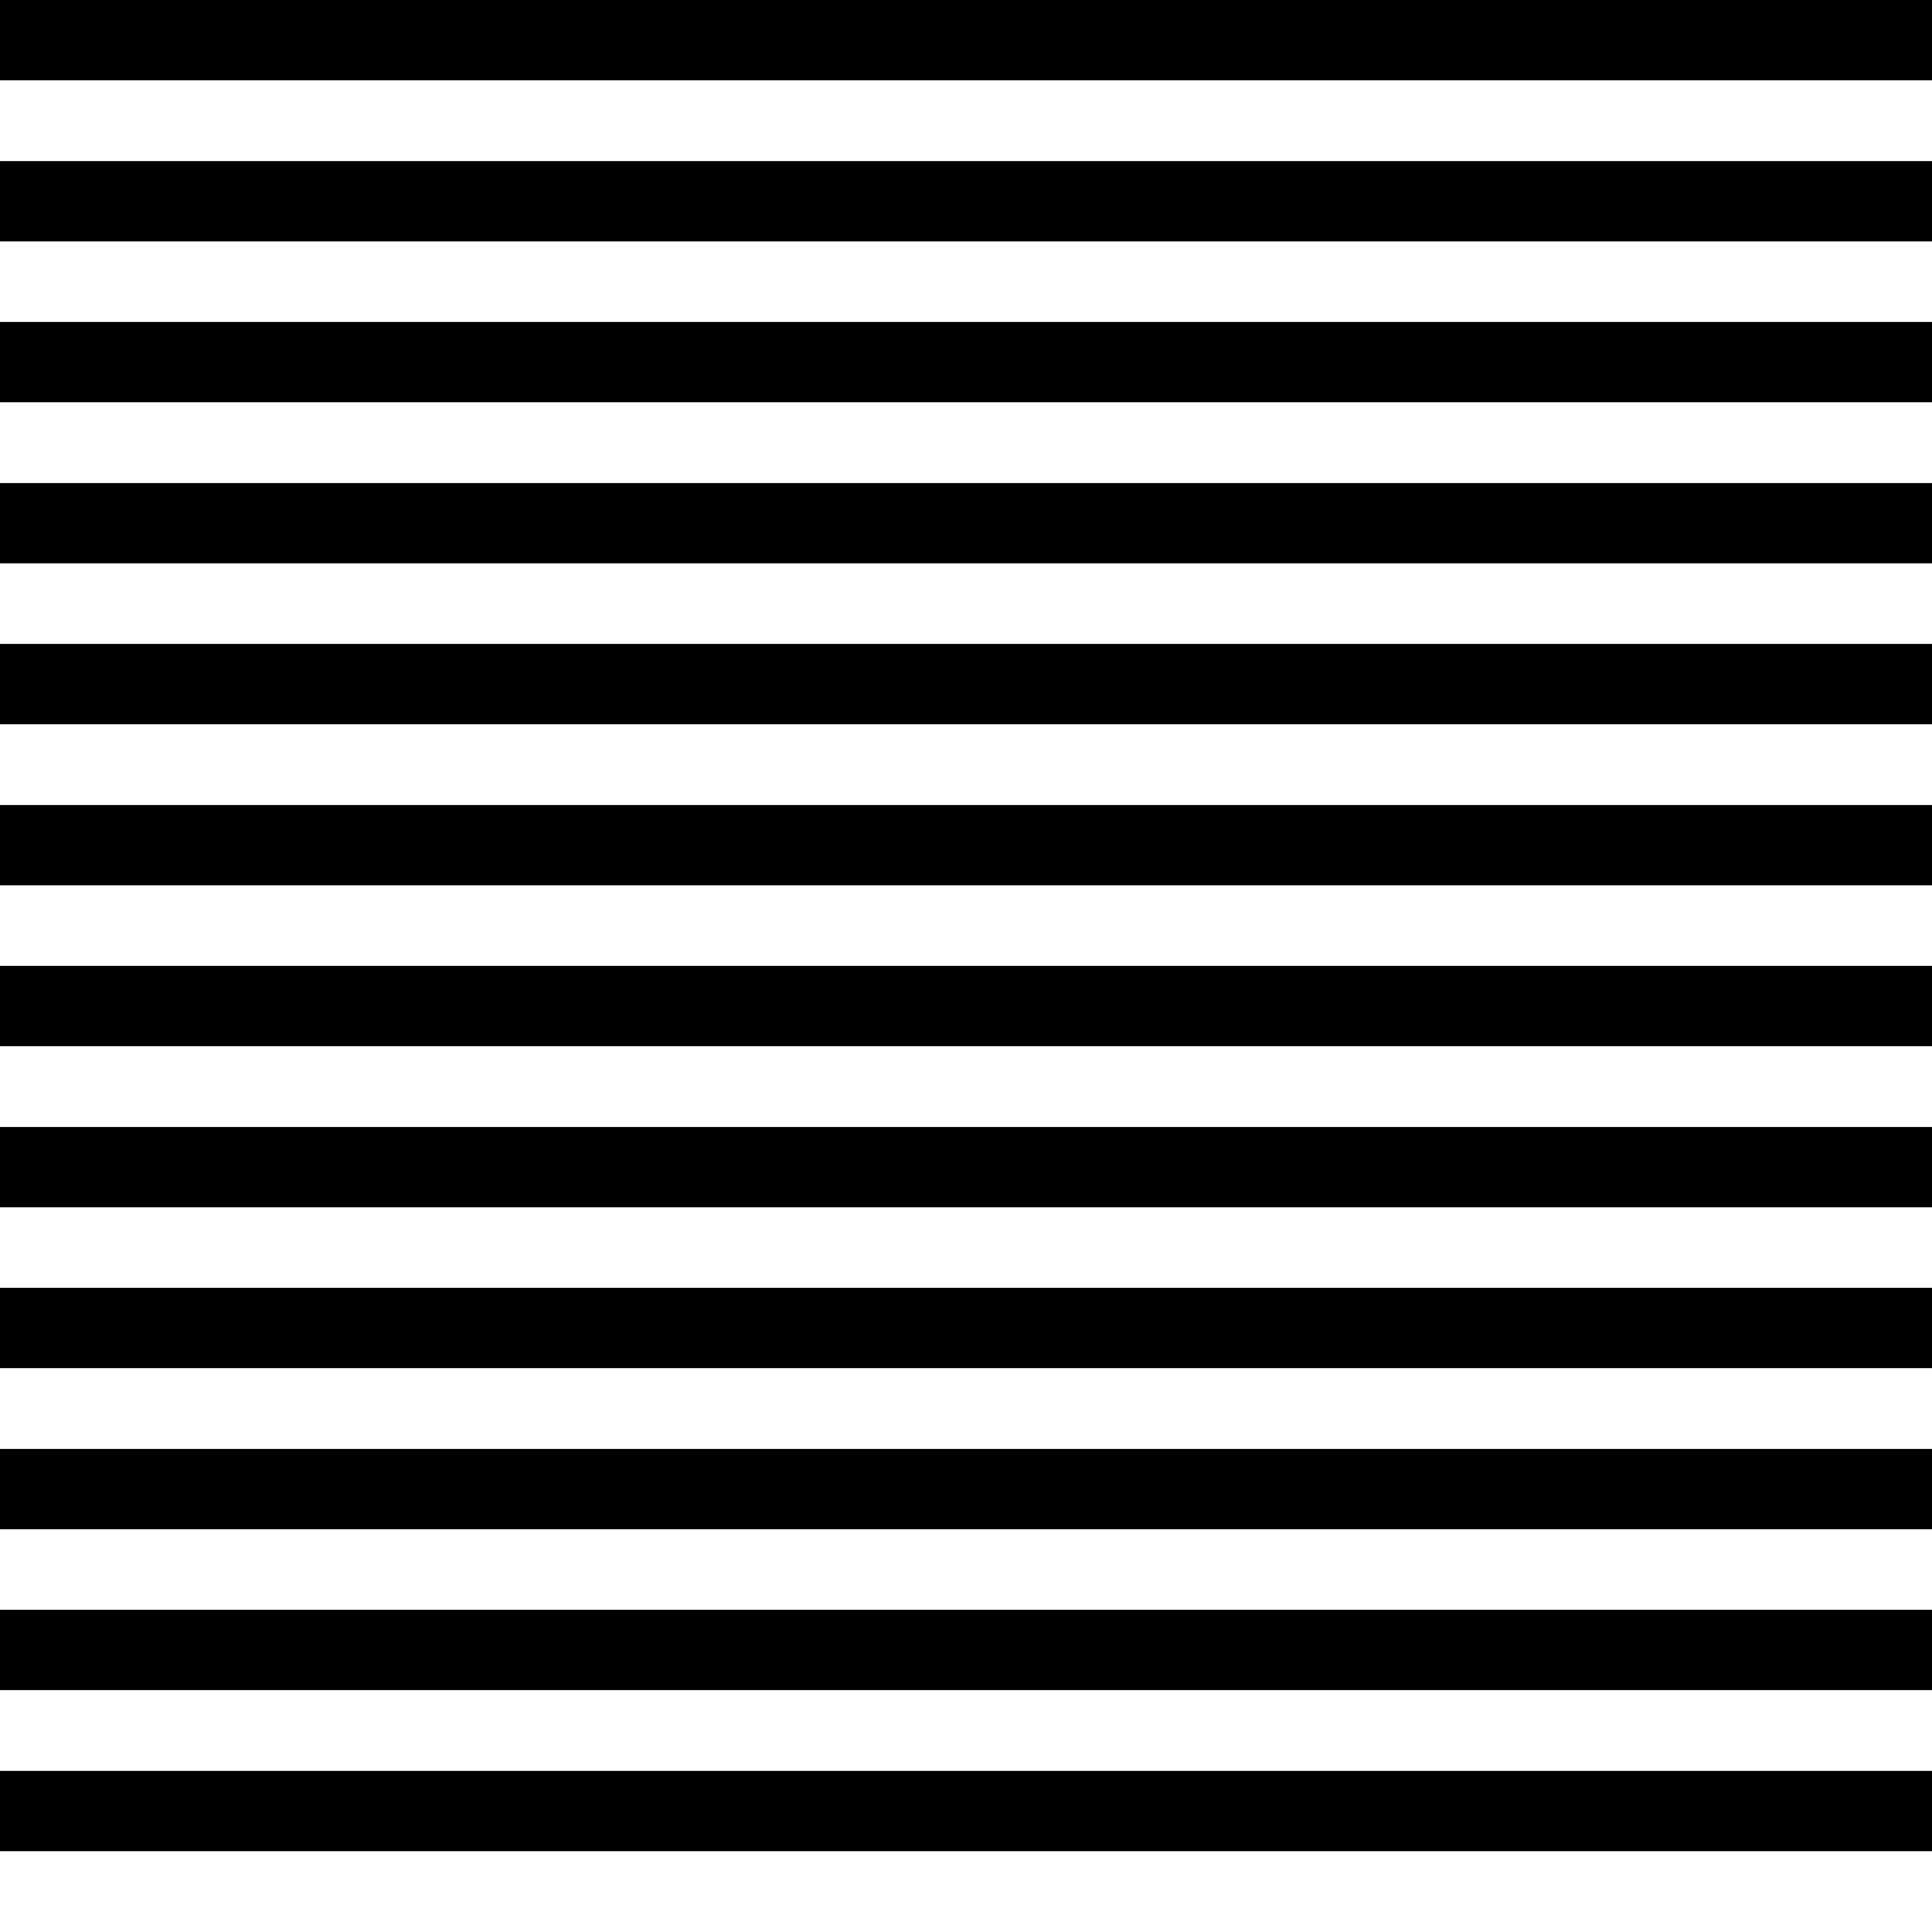 Black and White Striped Pattern   Clip Art 7891x7891